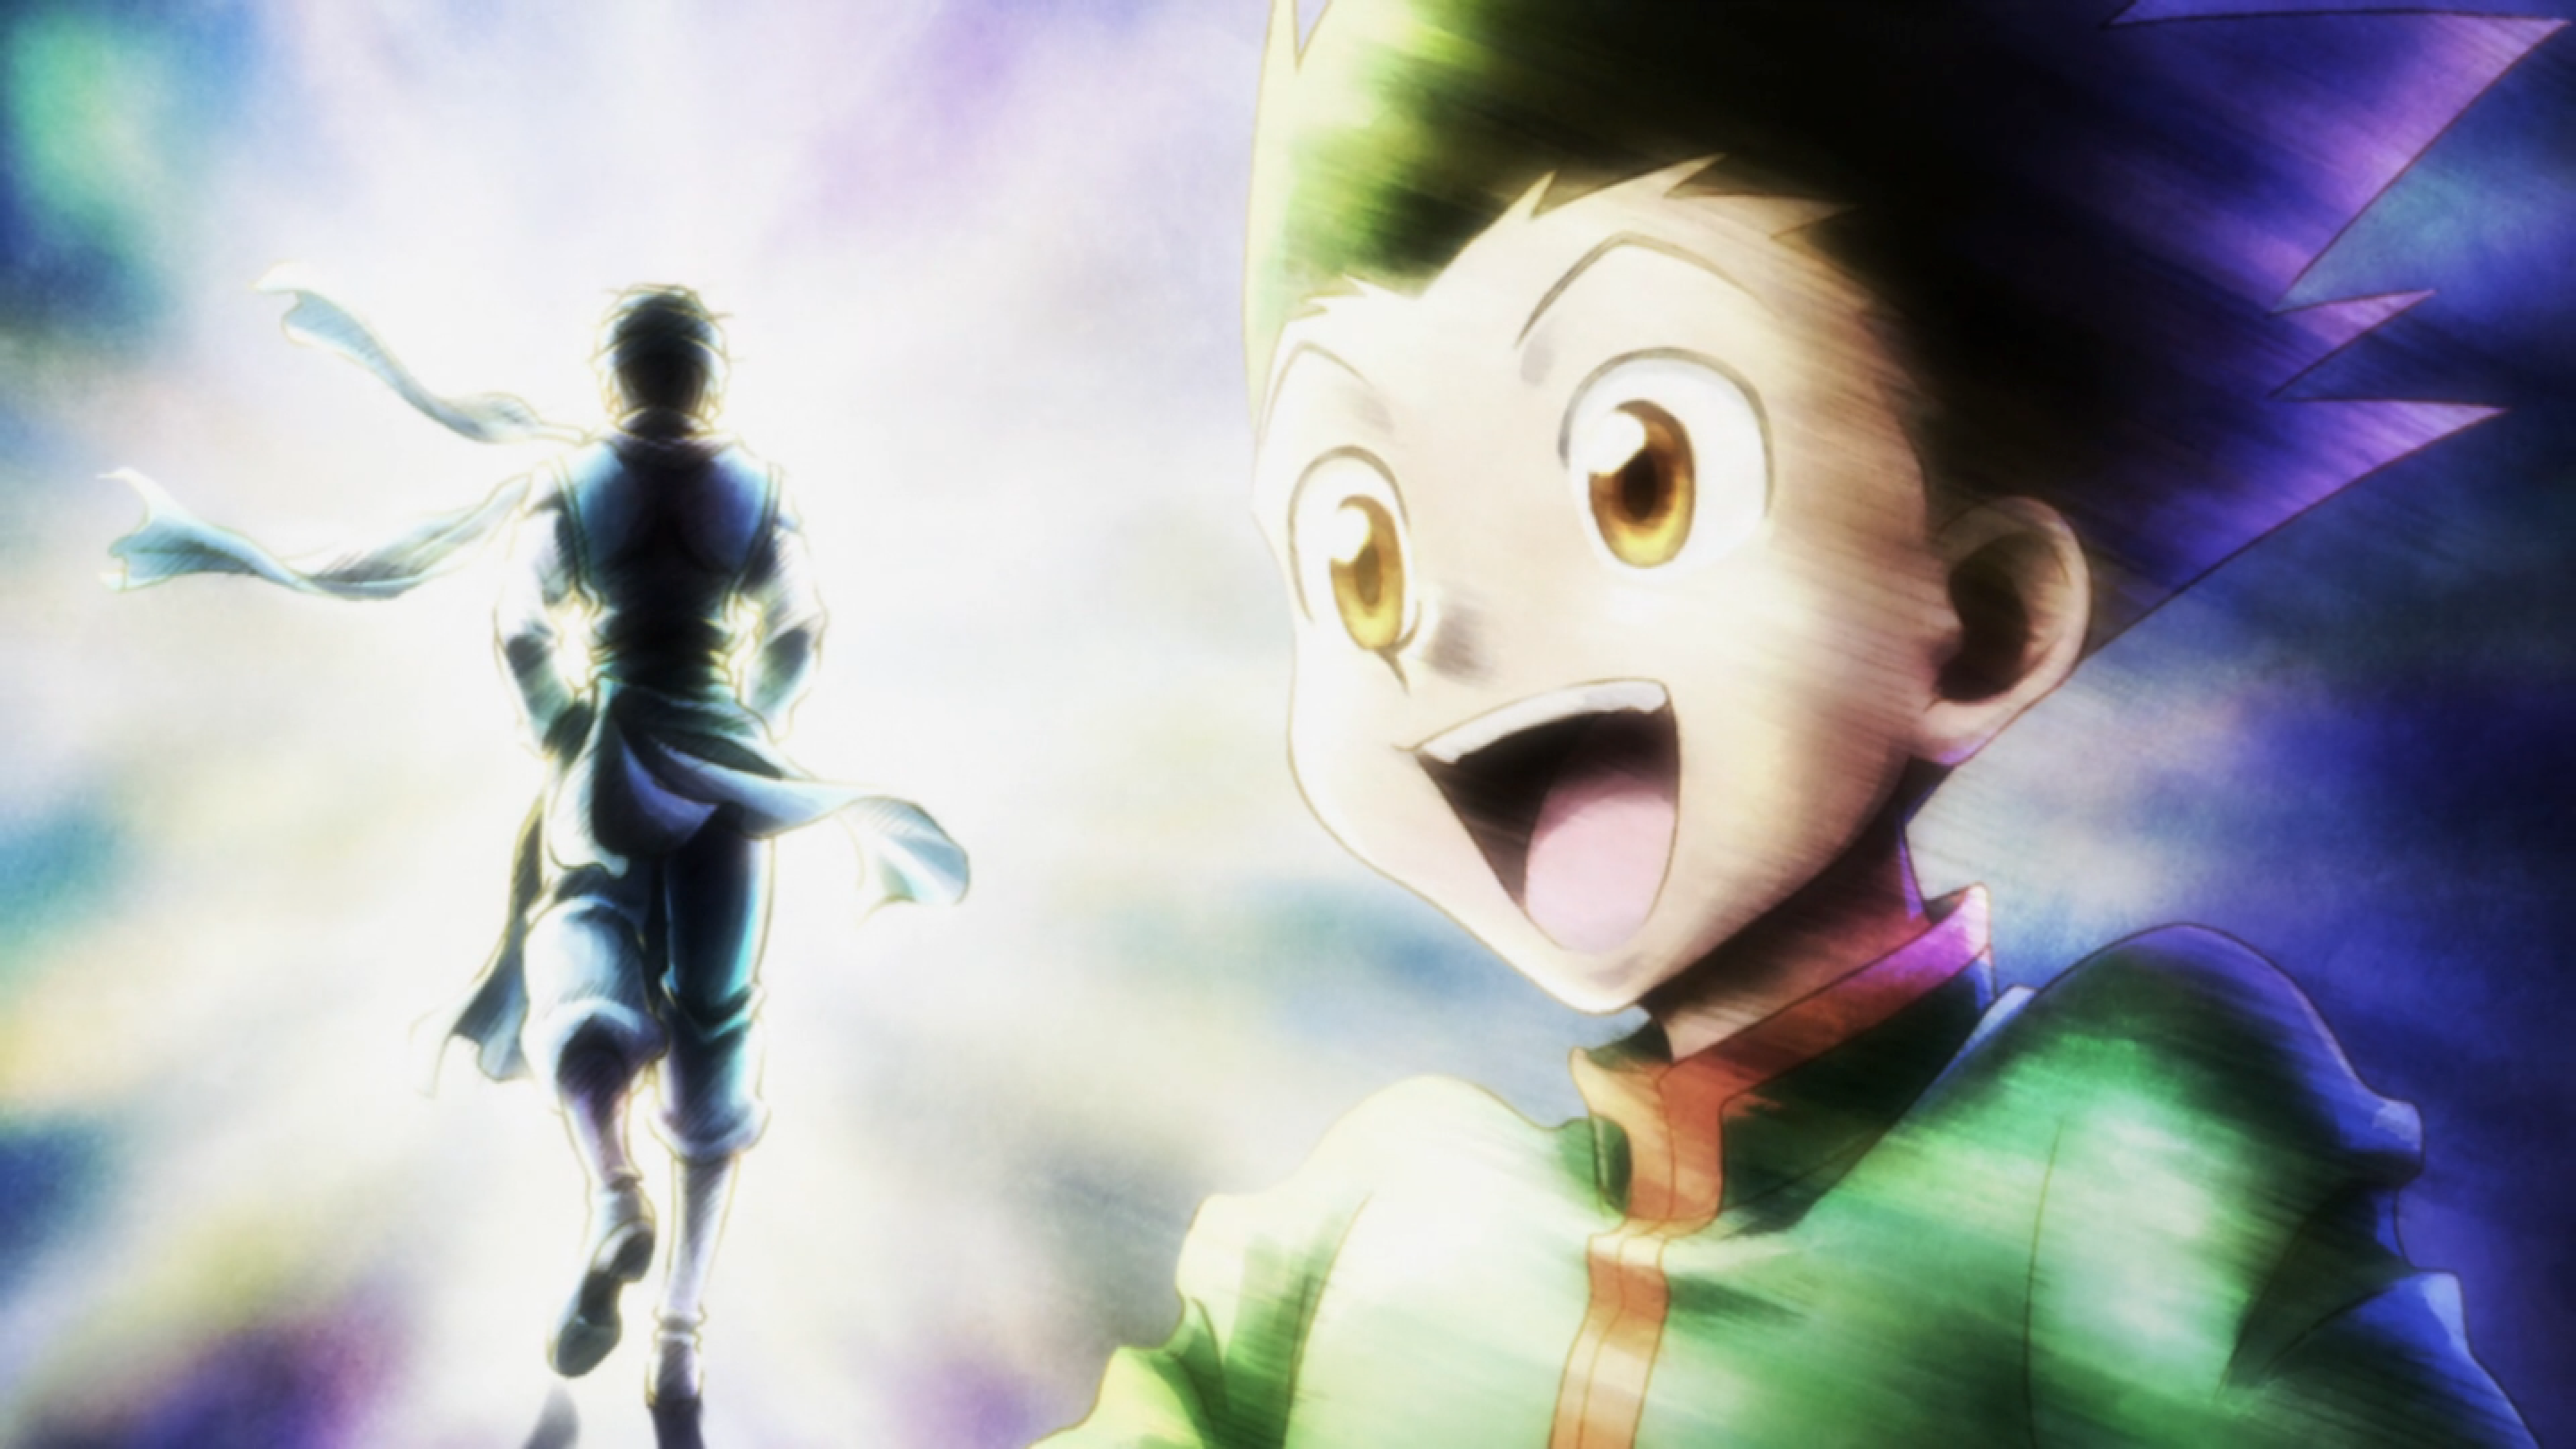 Spoilers] Hunter x Hunter 148 FINAL Discussion anime